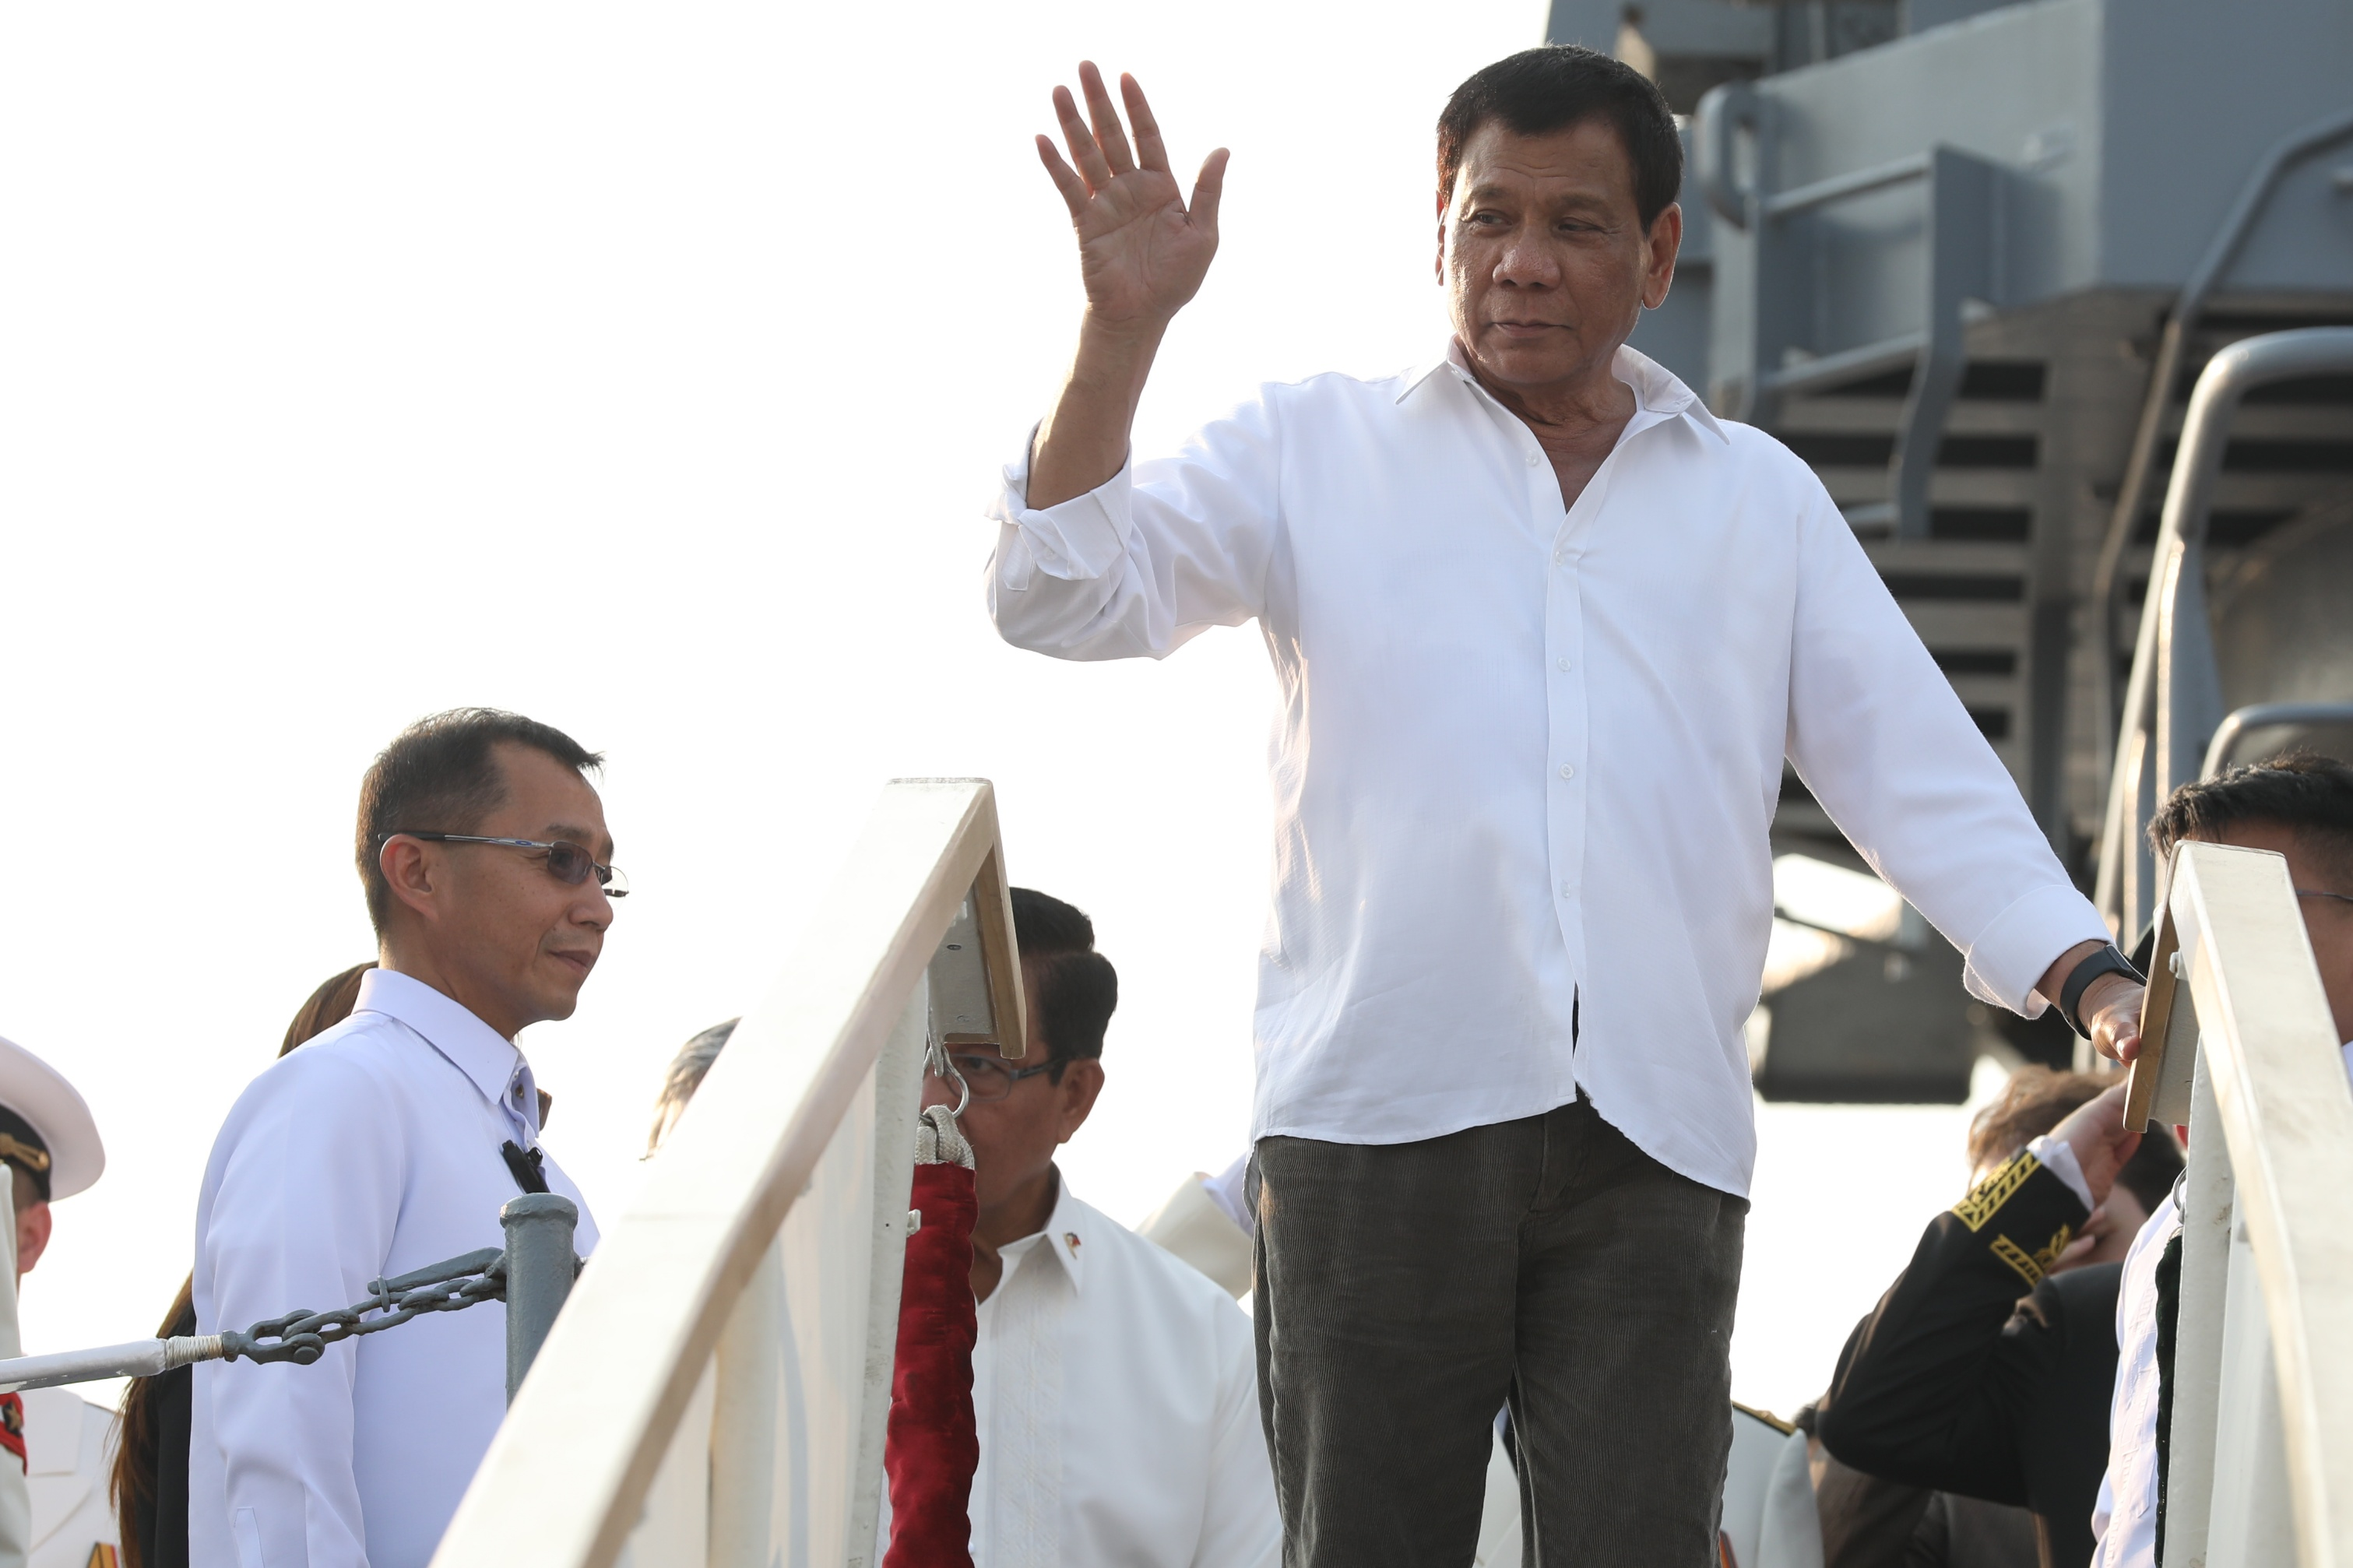 Duterte May 1 surprise for workers raise hopes